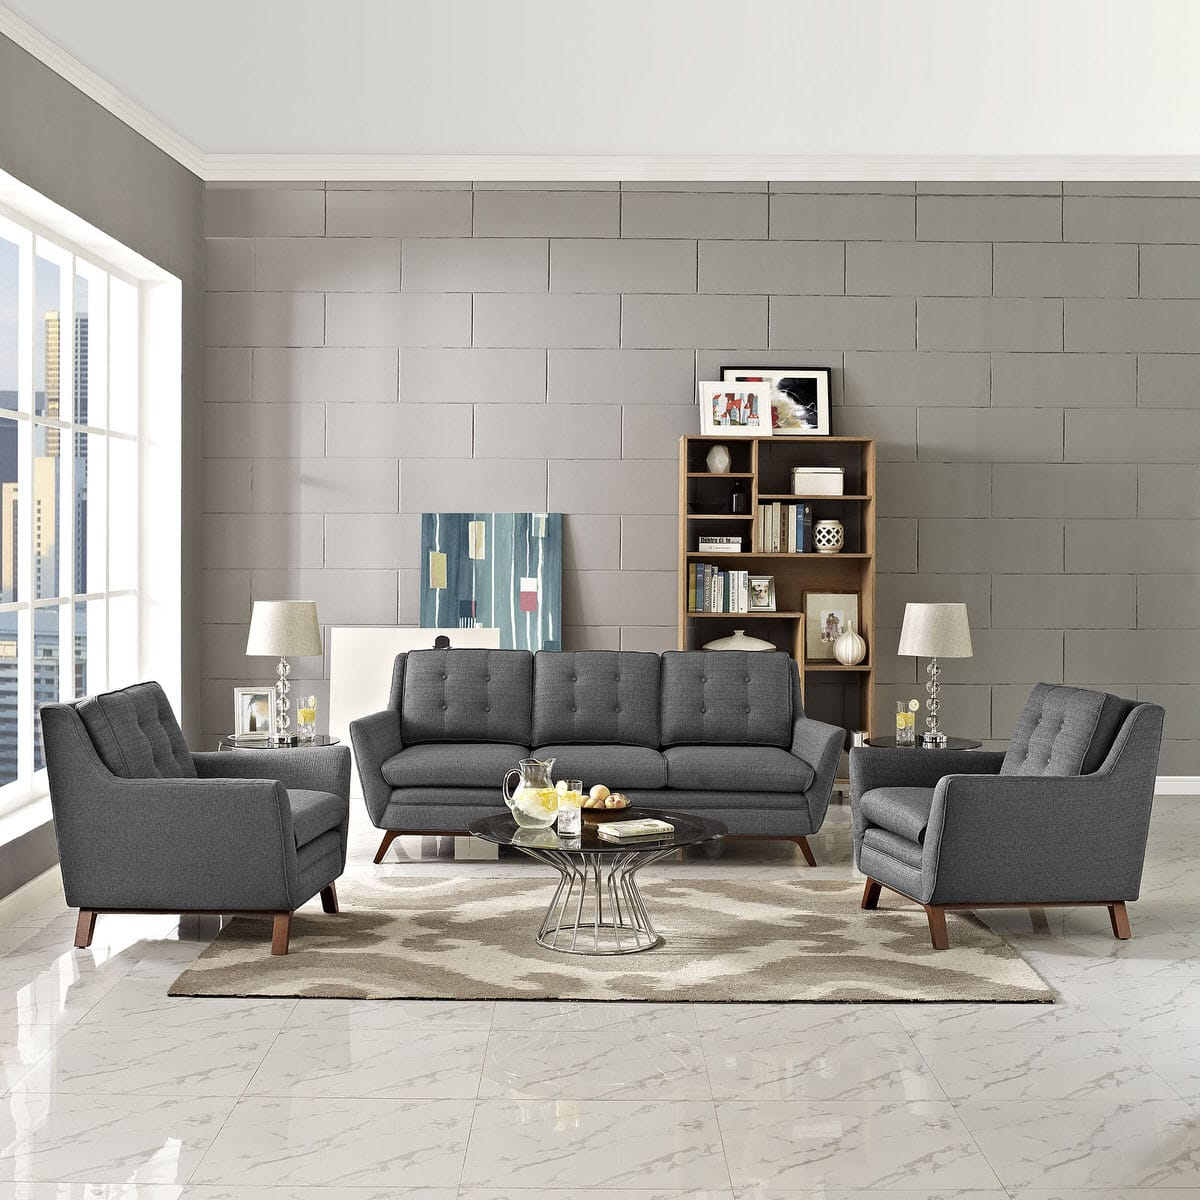 Beguile 3 Piece Upholstered Fabric Living